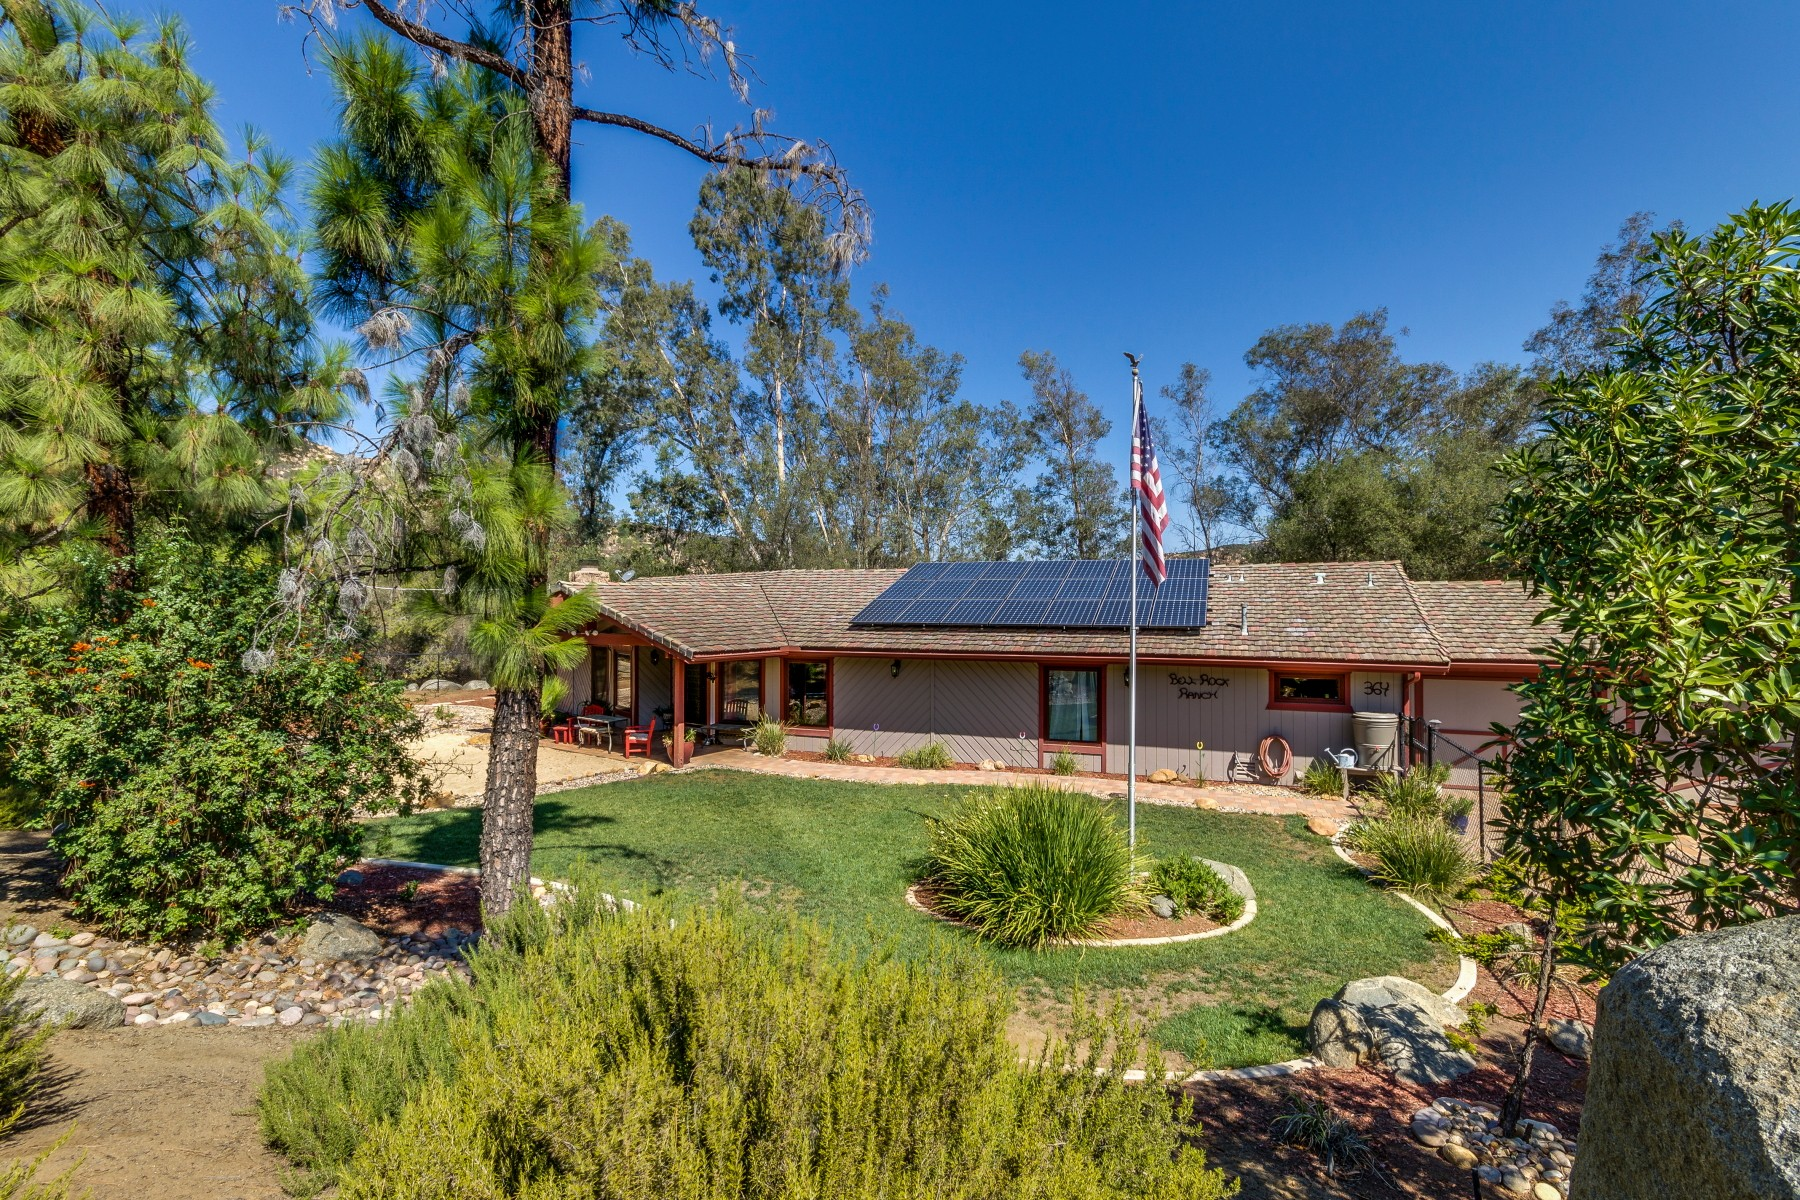 Single Family Home for Sale at 364 Galloway Valley Road Alpine, California 91901 United States